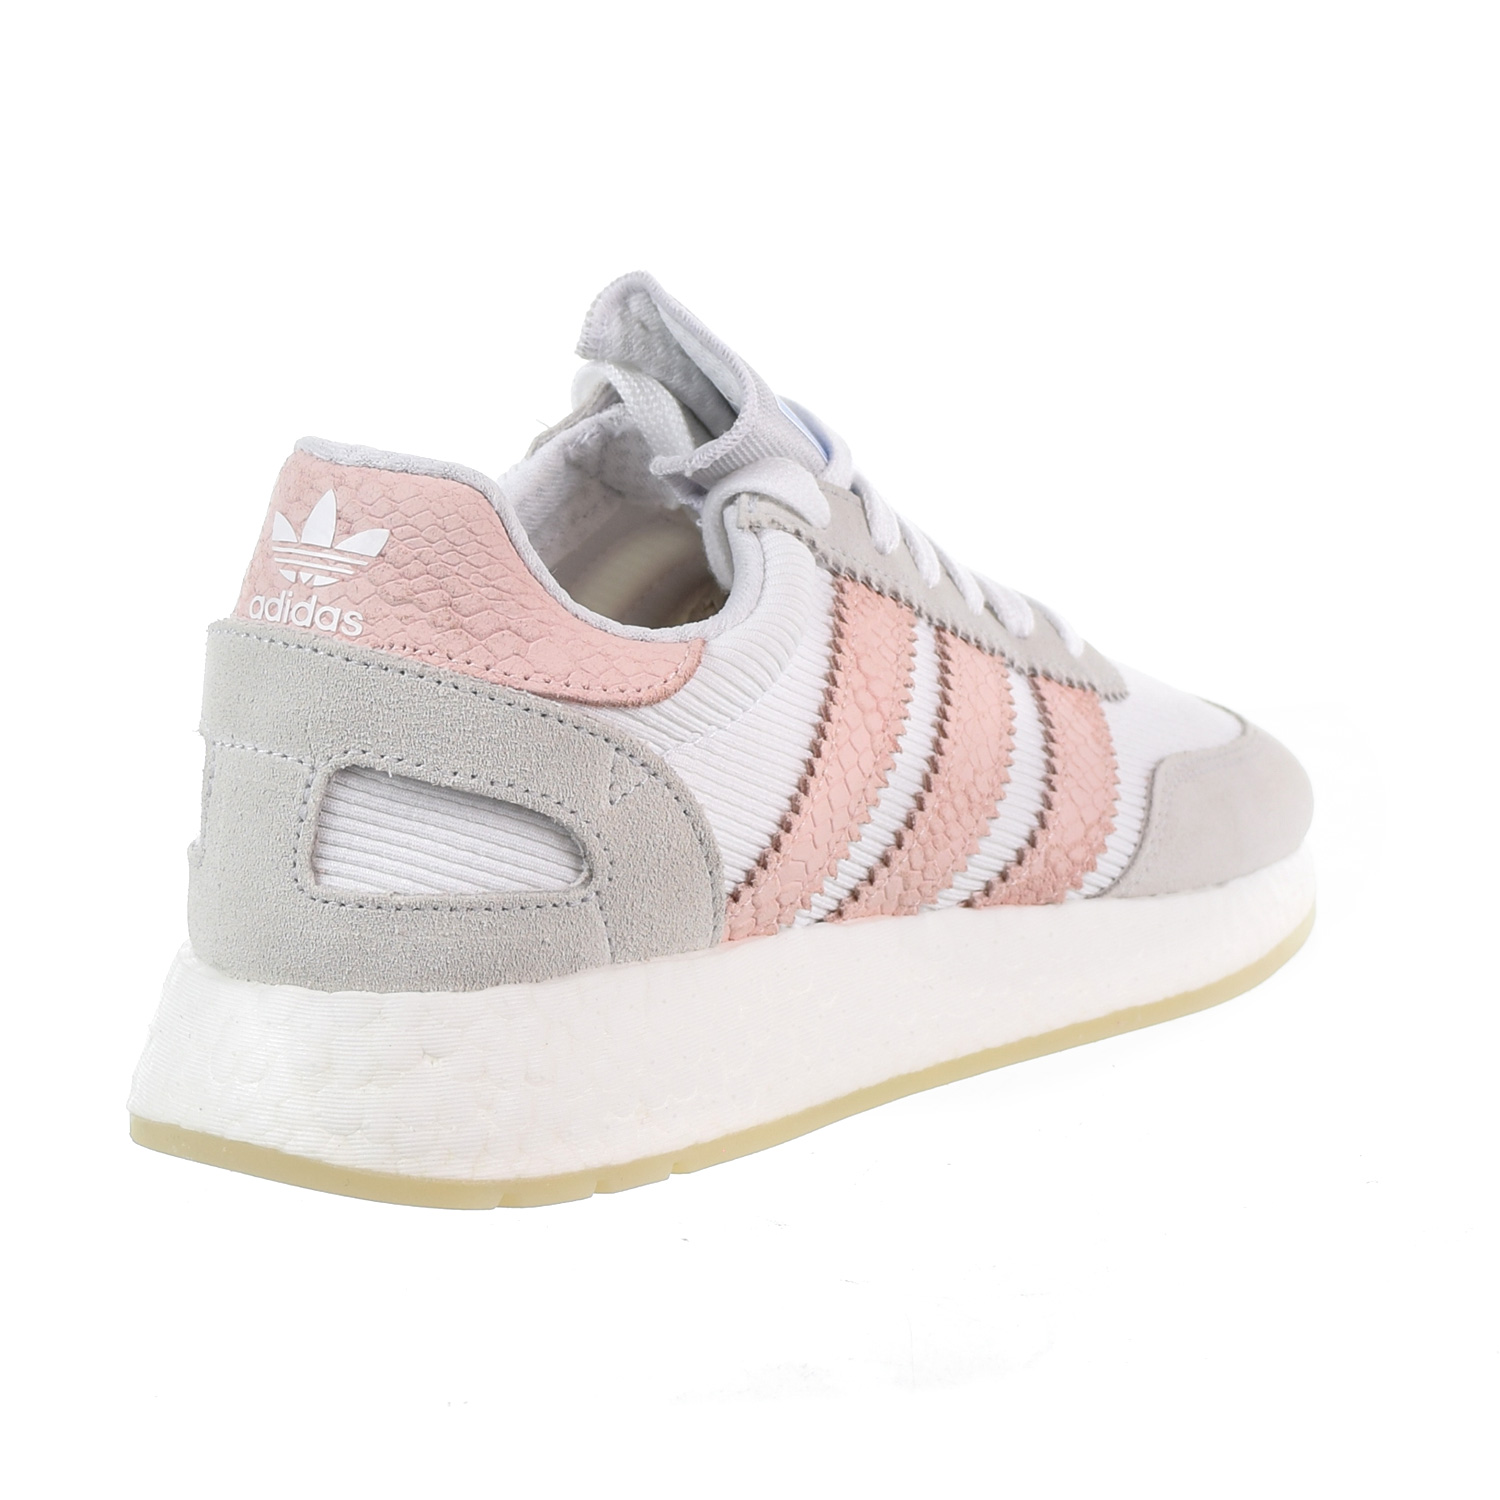 24f6cba416a32a Adidas I-5923 Women s Shoes Cloud White Icey Pink Crystal White d97348